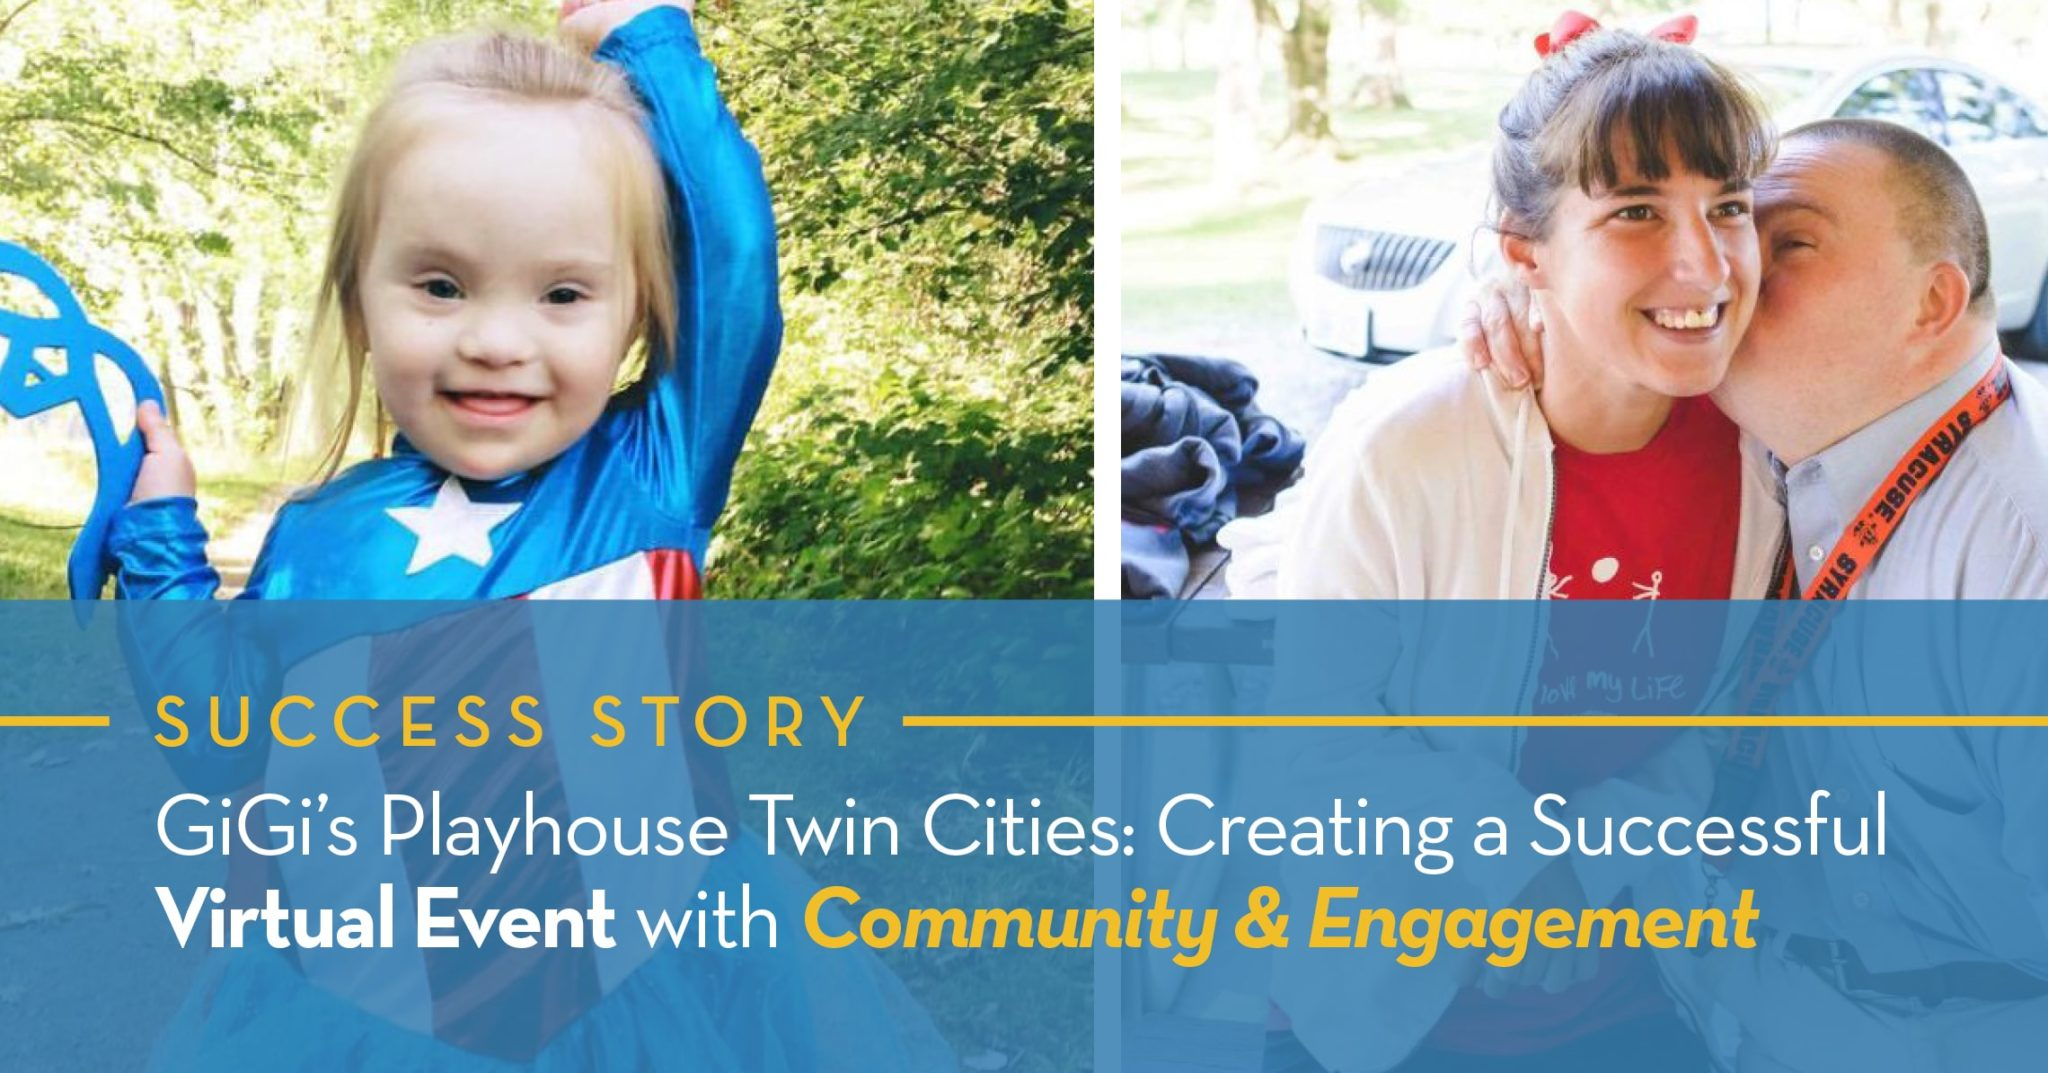 GiGi's Playhouse Twin Cities: Creating a Successful Virtual Event with Community & Engagement